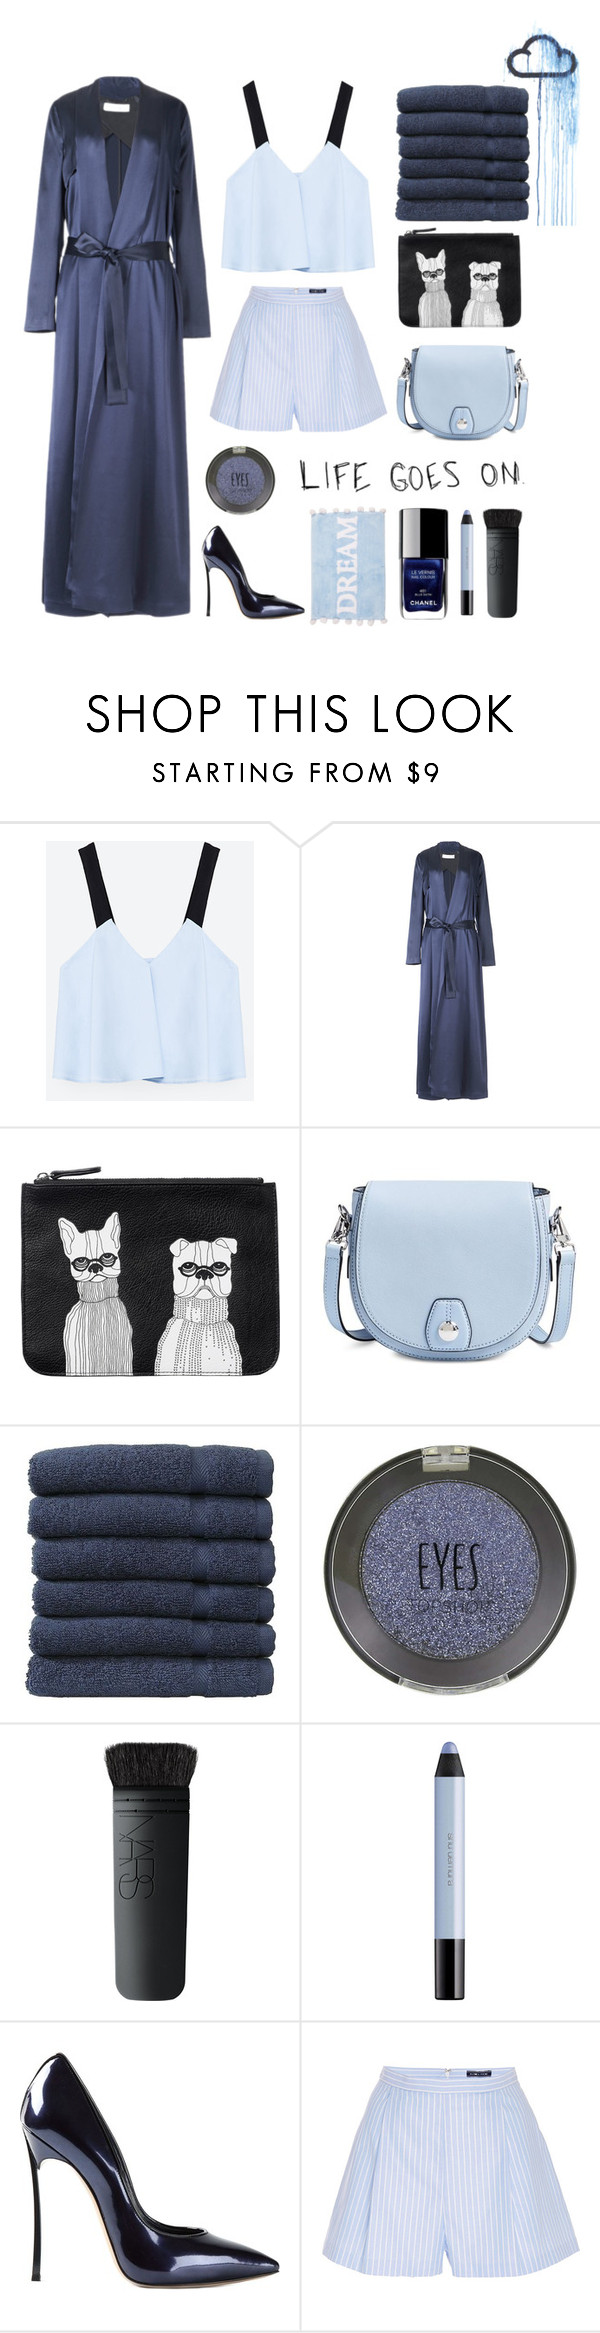 """""""Tricky Trend: Daytime Pajamas"""" by thismay ❤ liked on Polyvore featuring Zara, Galvan, Monki, rag & bone, Linum Home Textiles, Topshop, NARS Cosmetics, shu uemura, Casadei and MDS Stripes"""